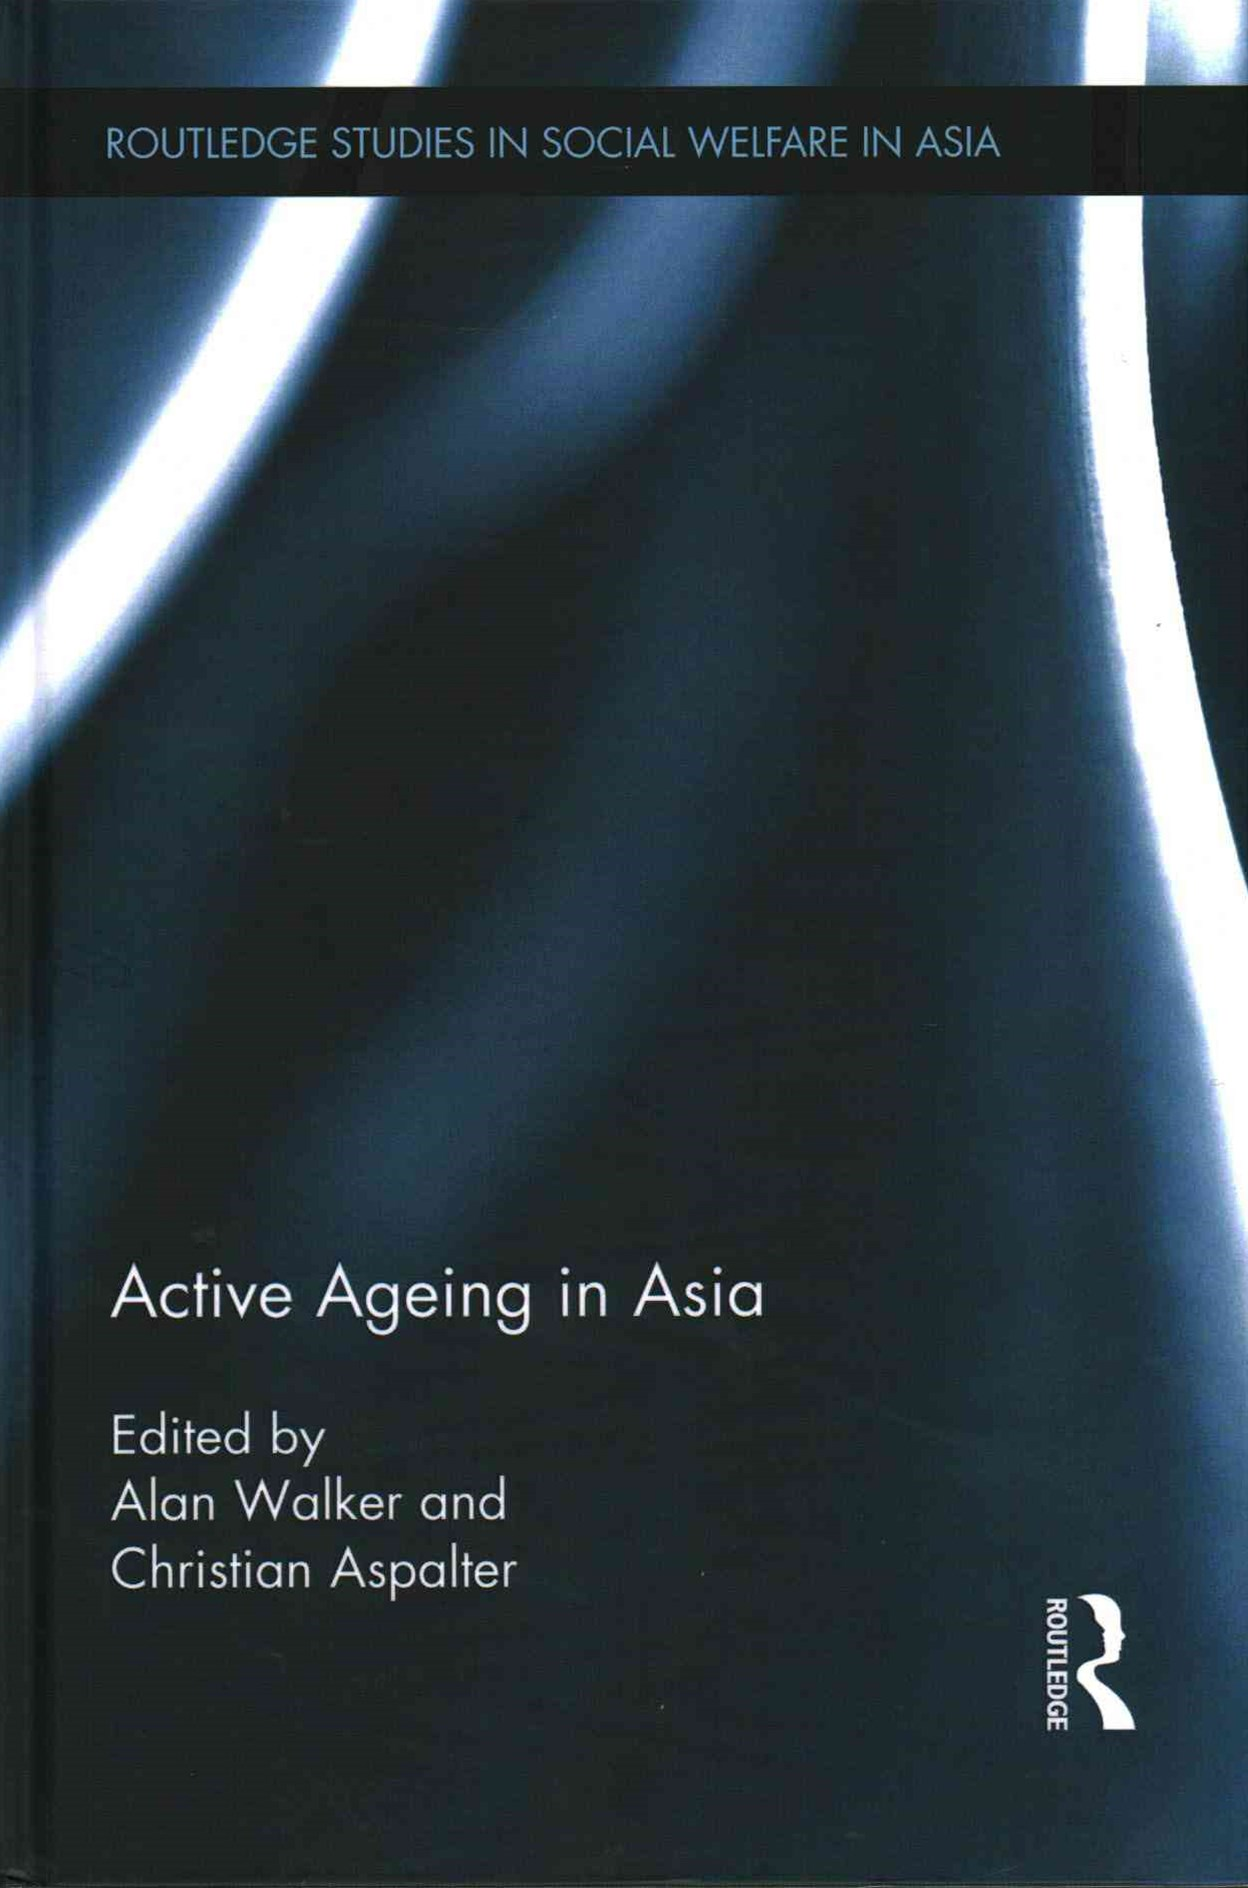 Active Aging in Asia